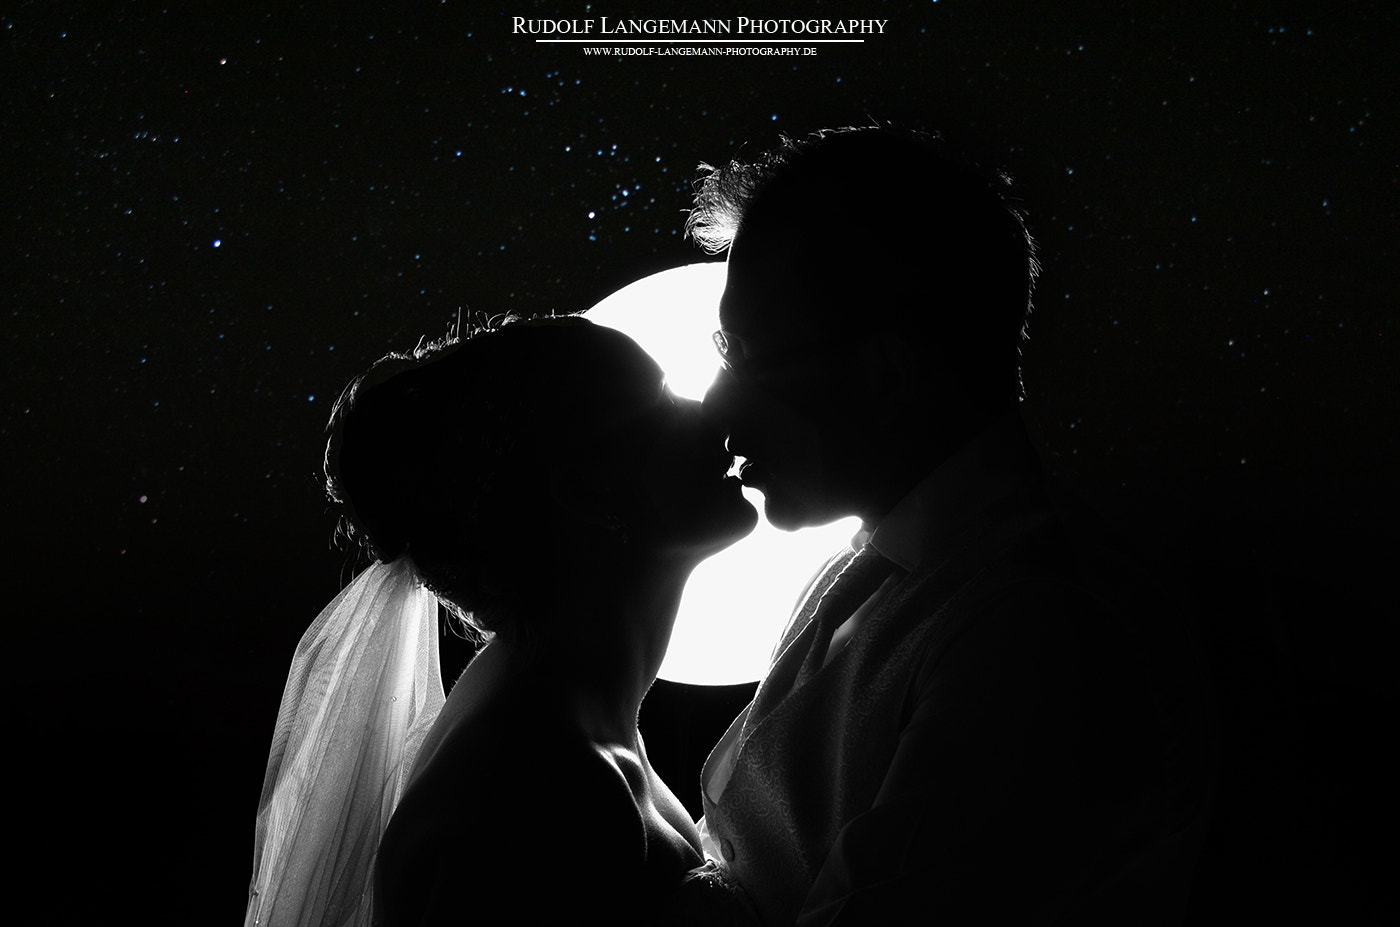 Photograph [ Moonlight Kiss | Bride & Groom ] by Rudolf Langemann on 500px